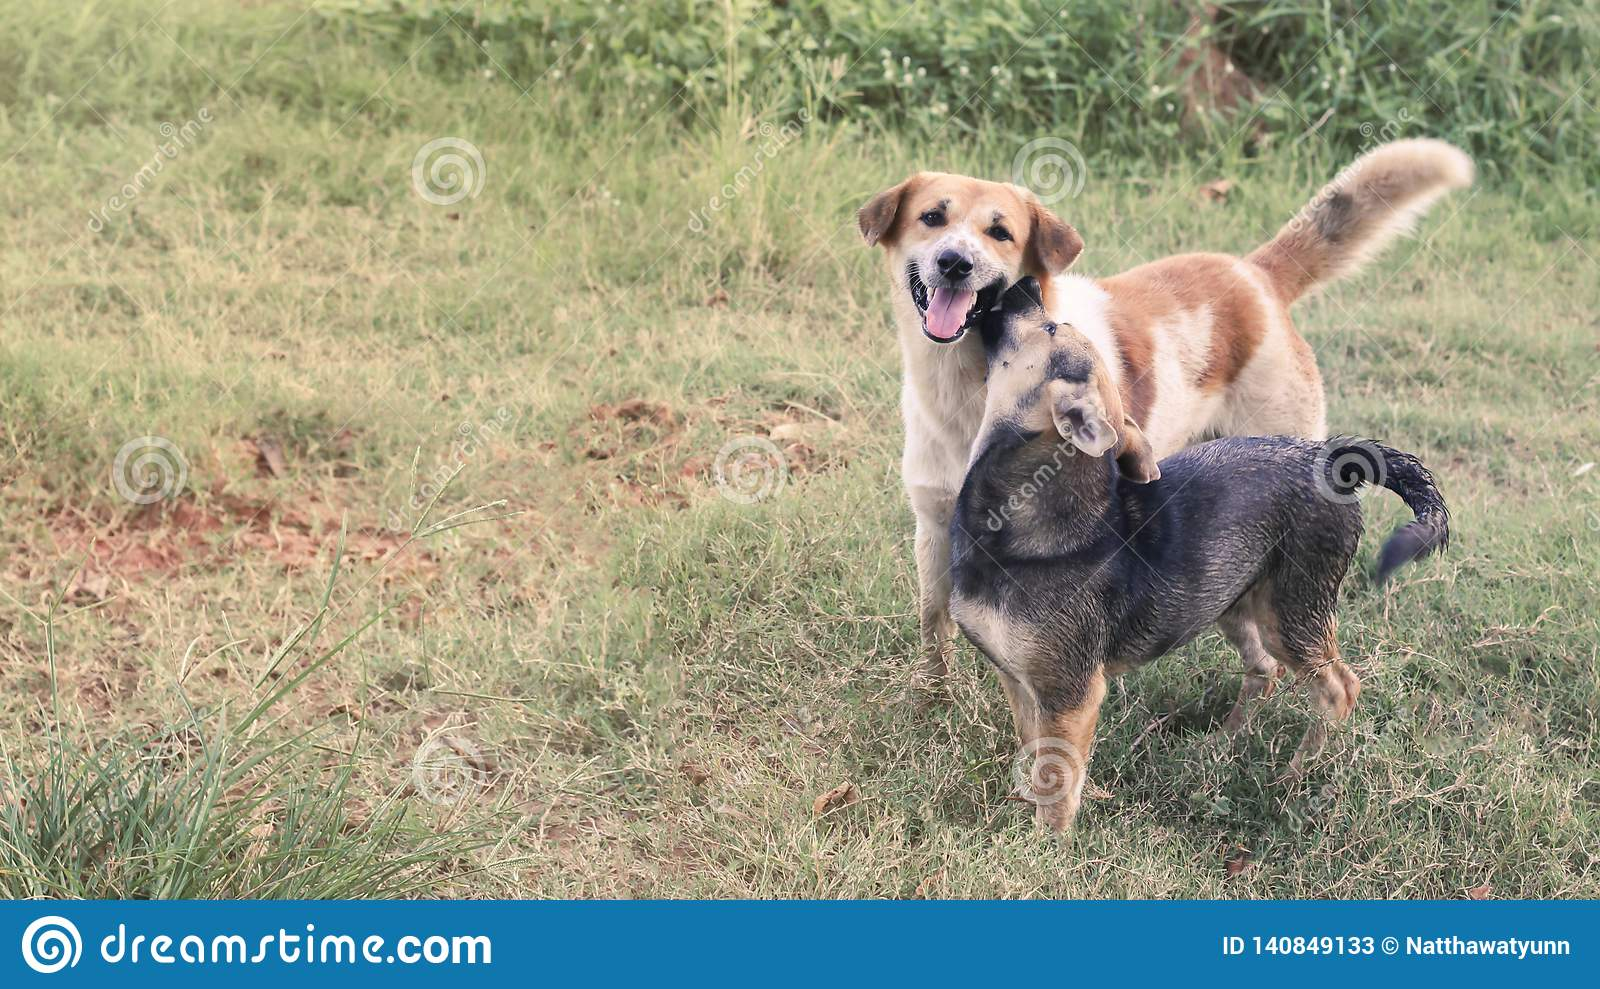 Male and female dogs look at the camera with dyes on the lawn in Thailand.